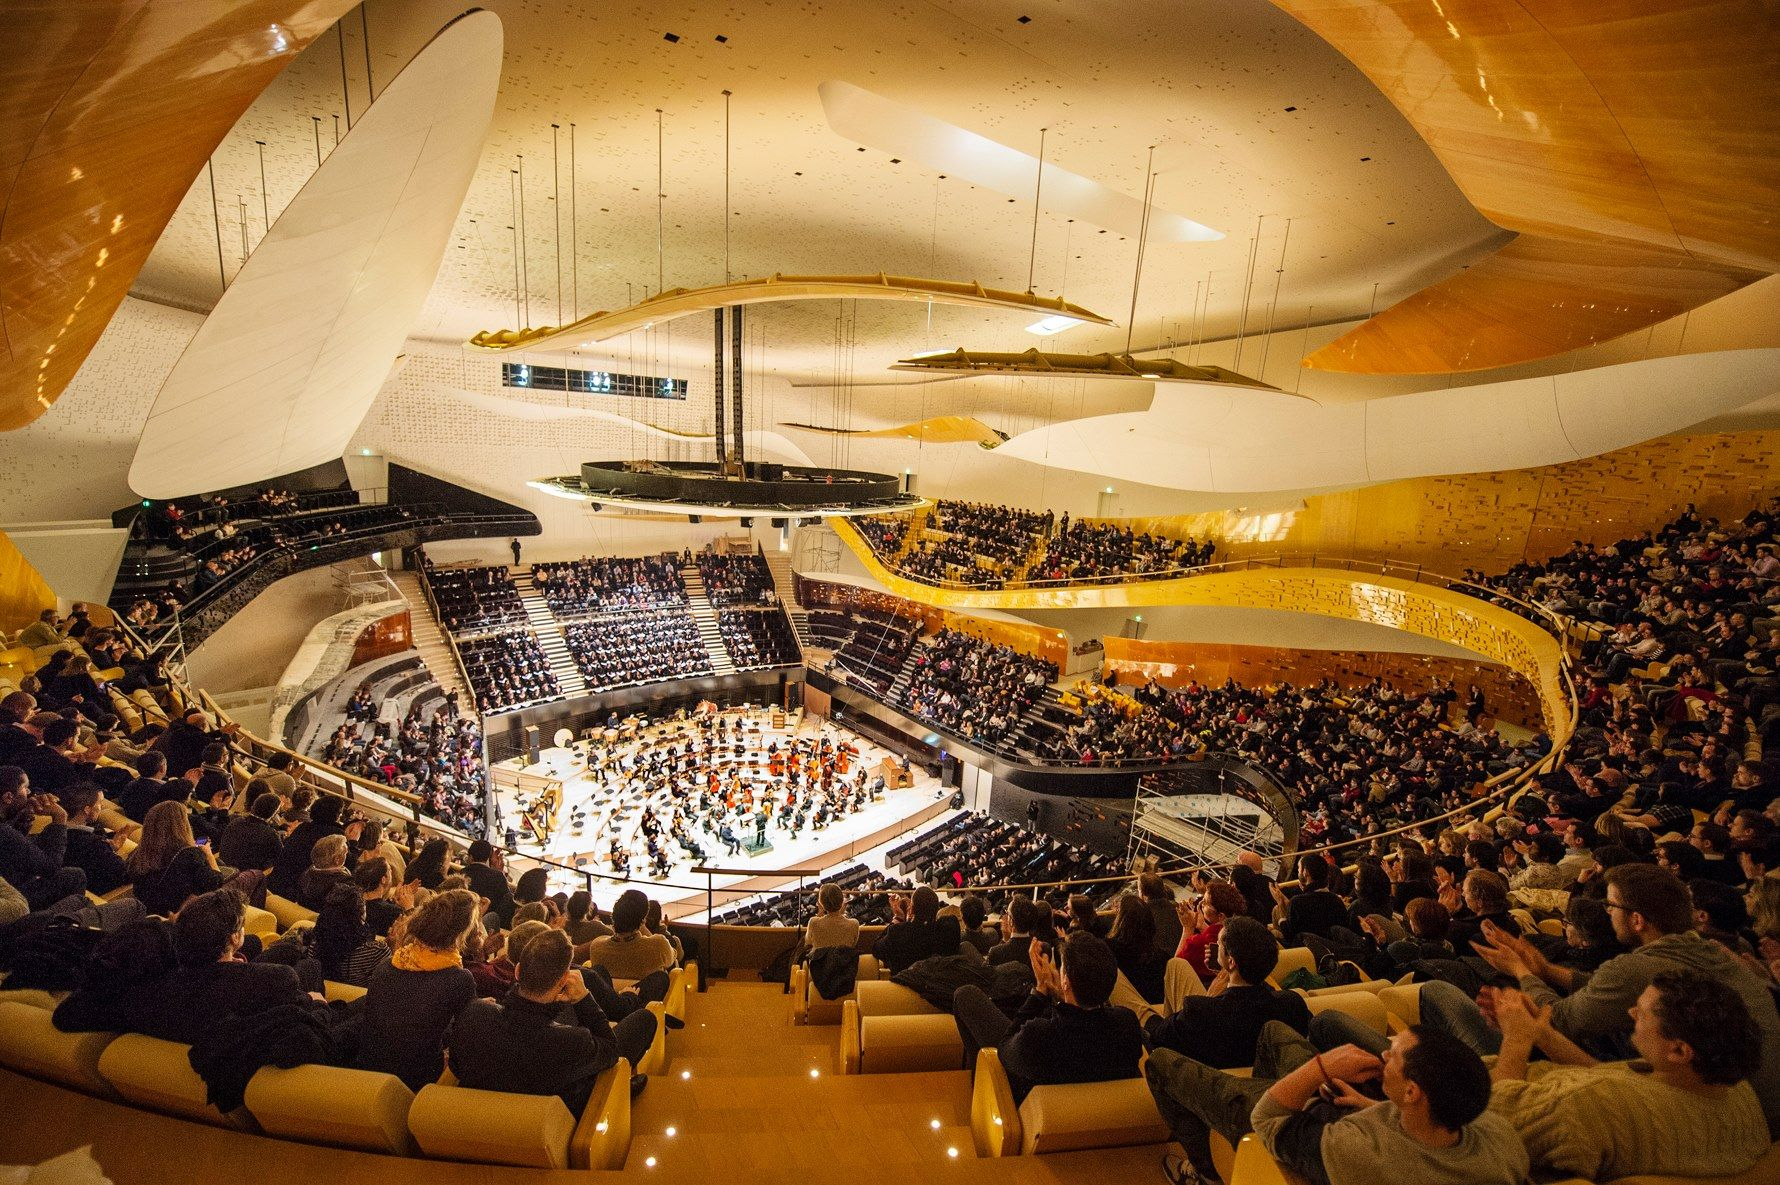 Ateliers-Jean-Nouvel-.-Philharmonie-.-Paris-1-Beaucardet